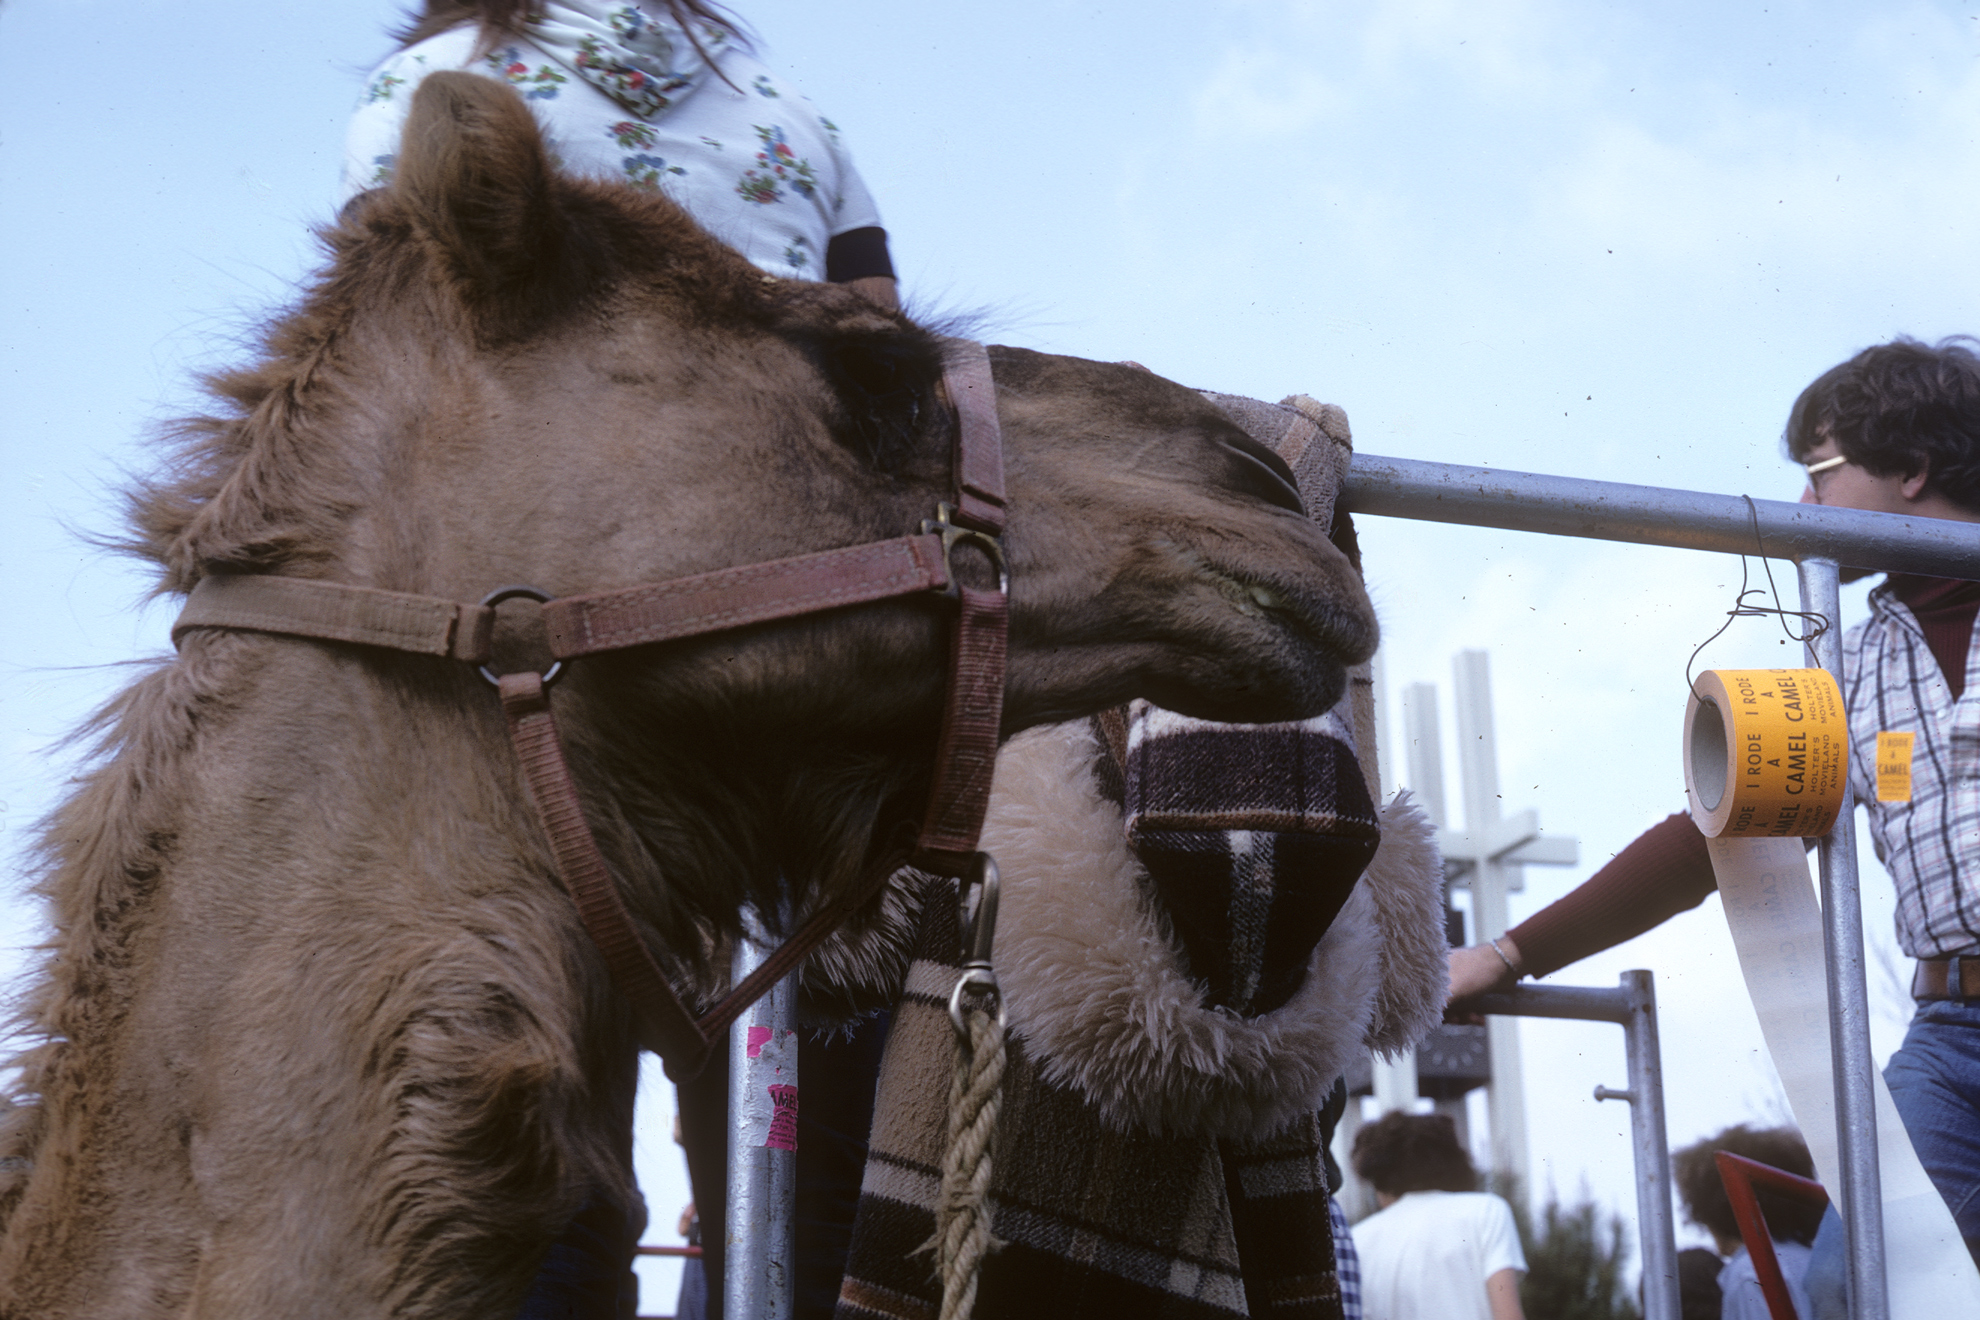 1975 - Camel rides with the Brant clock tower in the background.